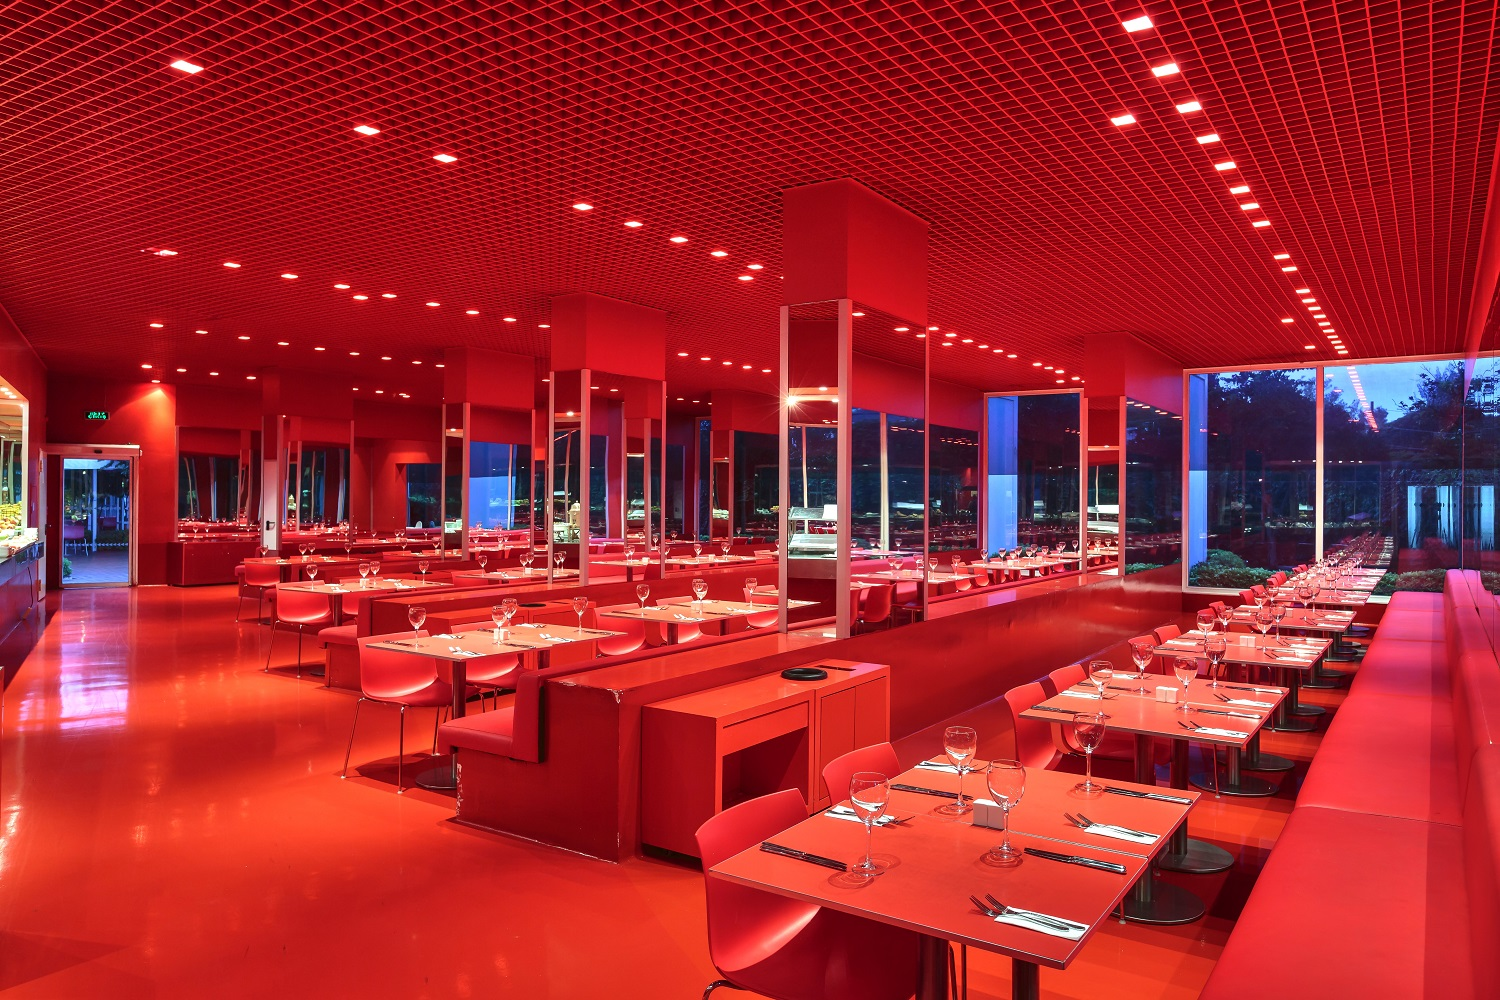 Image red_restaurant1.jpg